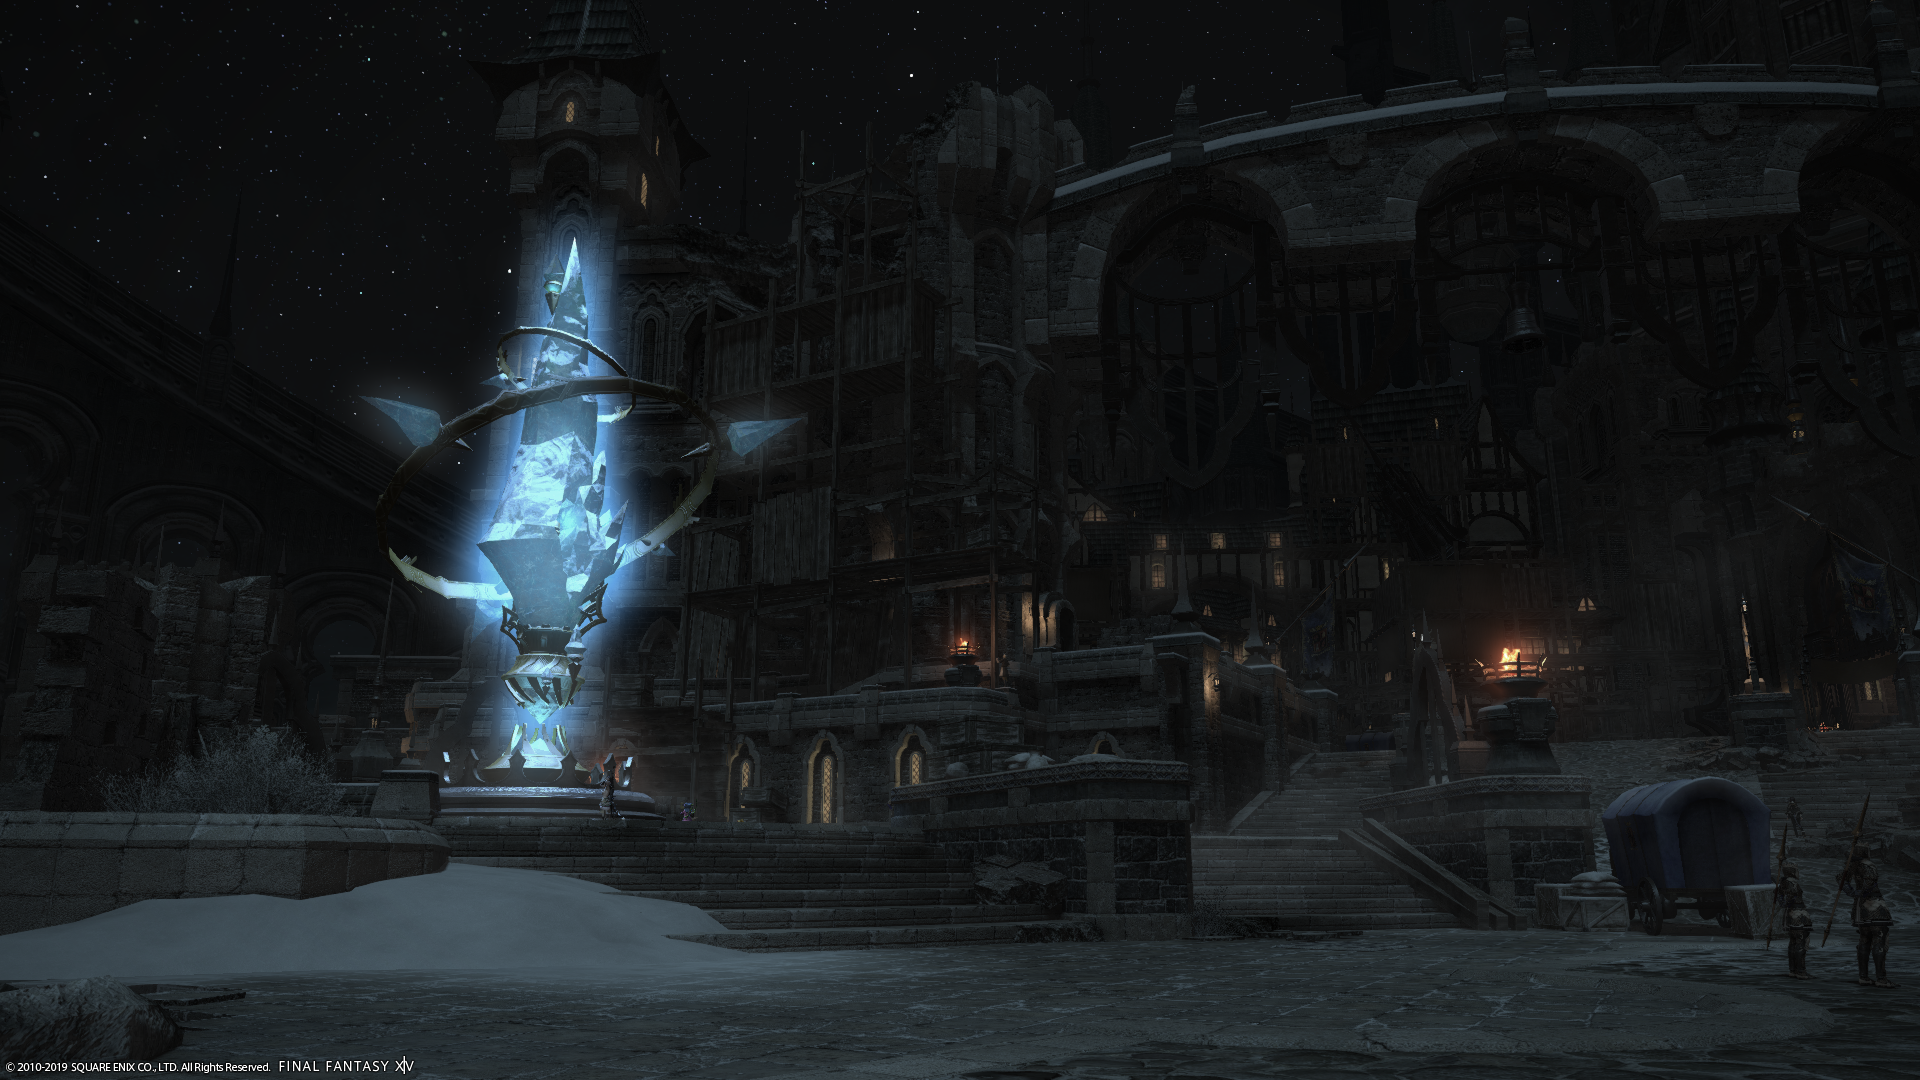 Final Fantasy XIV: Heavensward Free Until Launch of